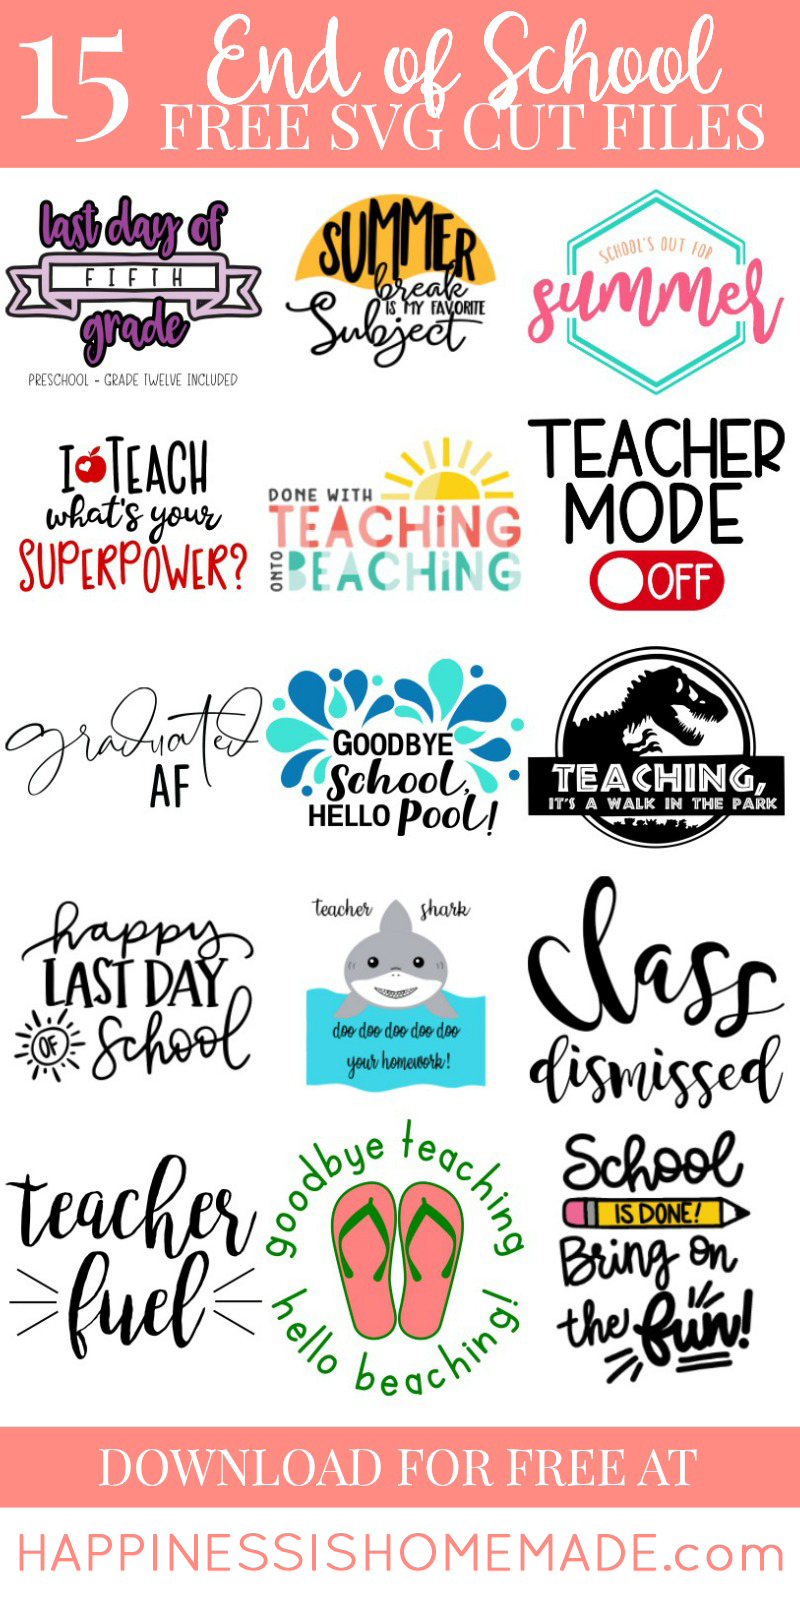 Download Free Teacher SVGs for the Last Day of School - Happiness ...